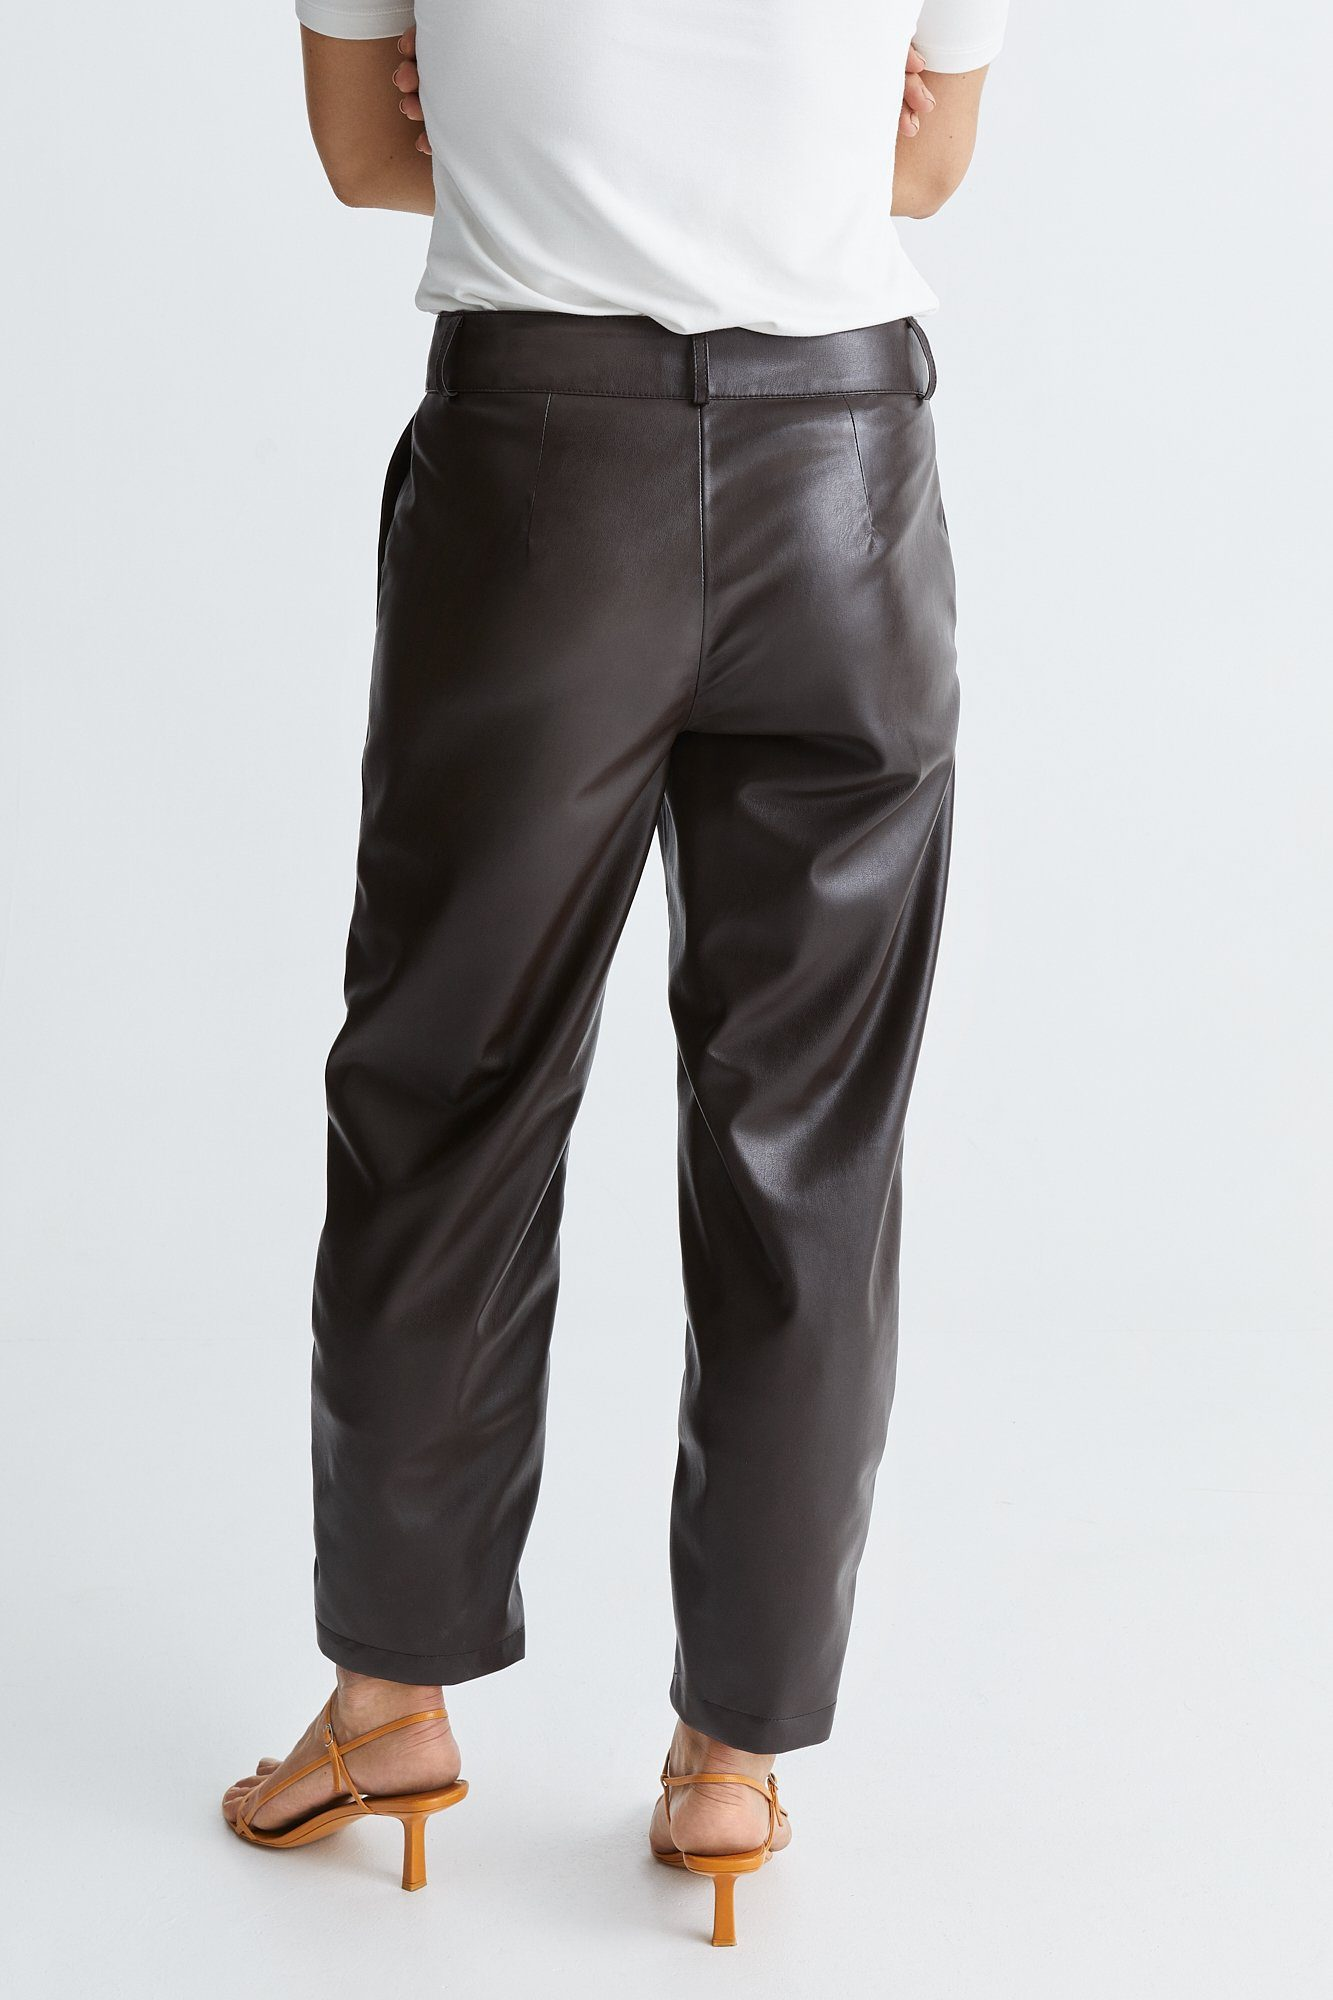 VERDE TROUSERS - BROWN Trousers Stylein